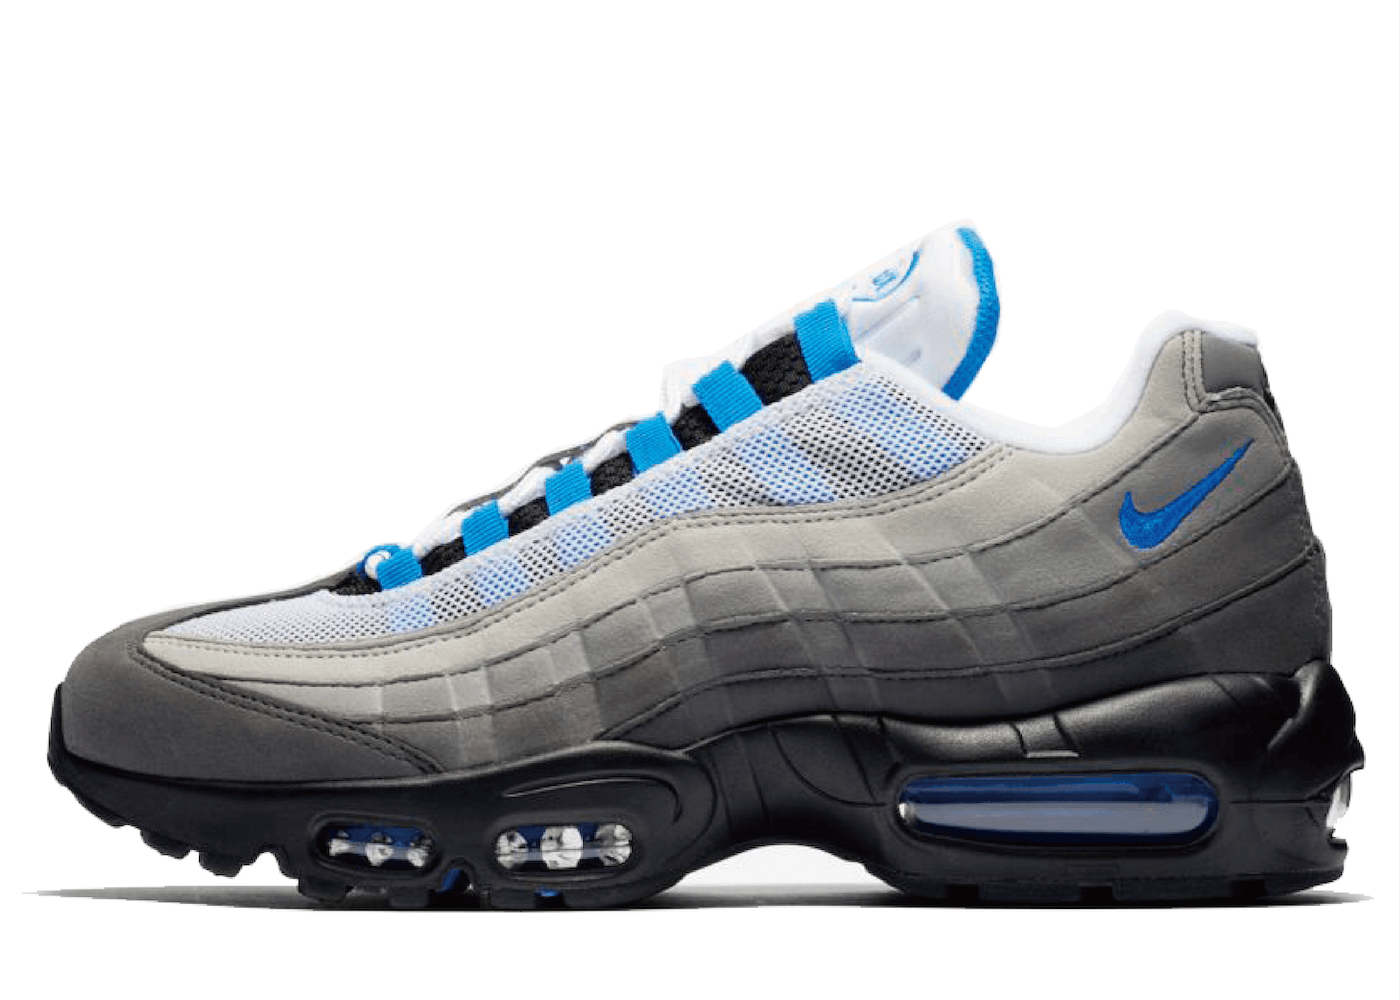 Nike Air Max 95 OG Crystal Blueの写真